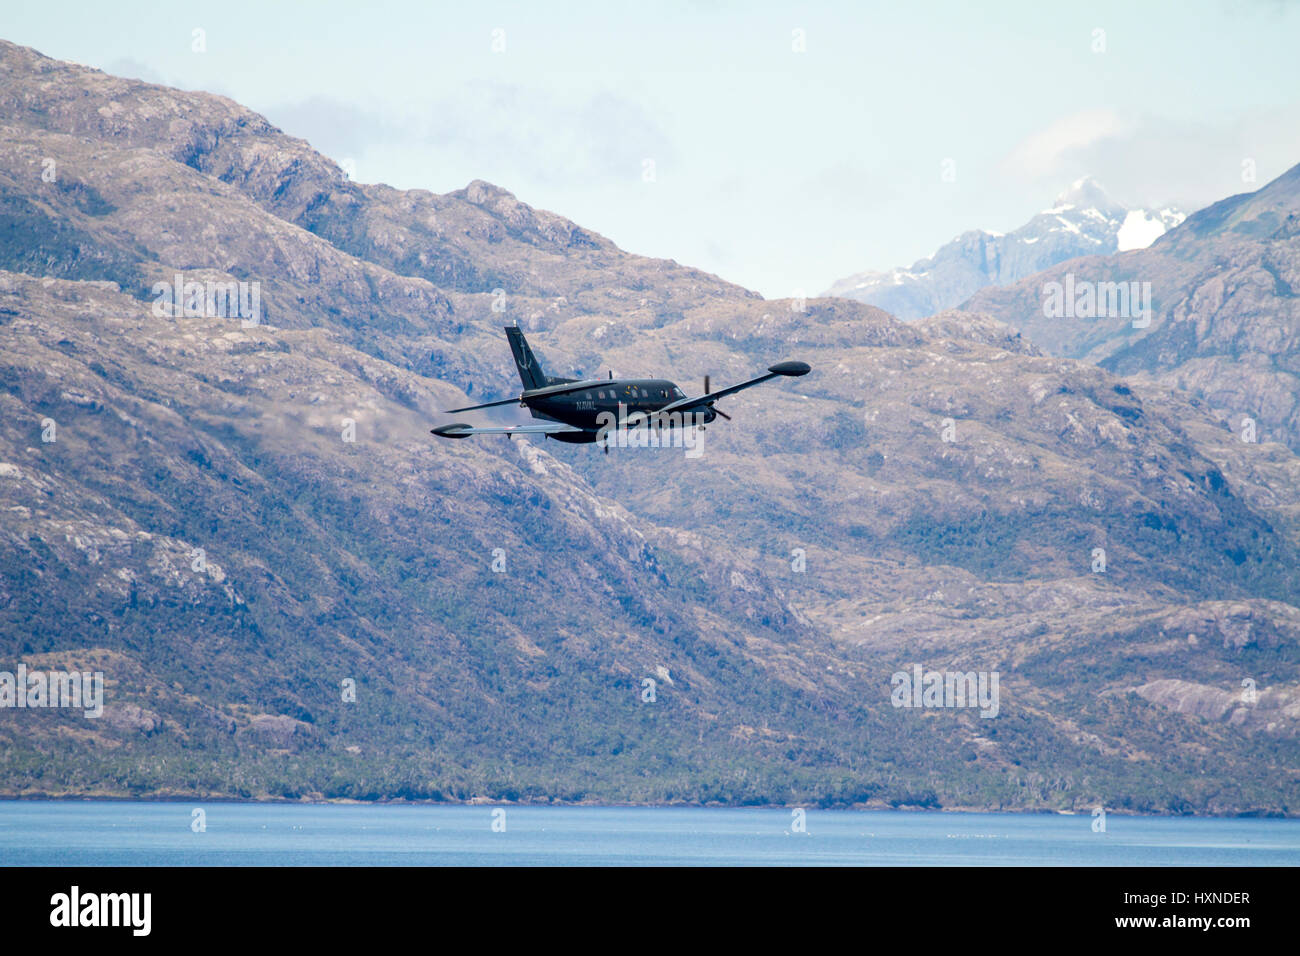 Military Plane in Chilean Fijords - South America - Patagonia - Aeroplane Inside The Passage Of The Chilean Fjords Stock Photo